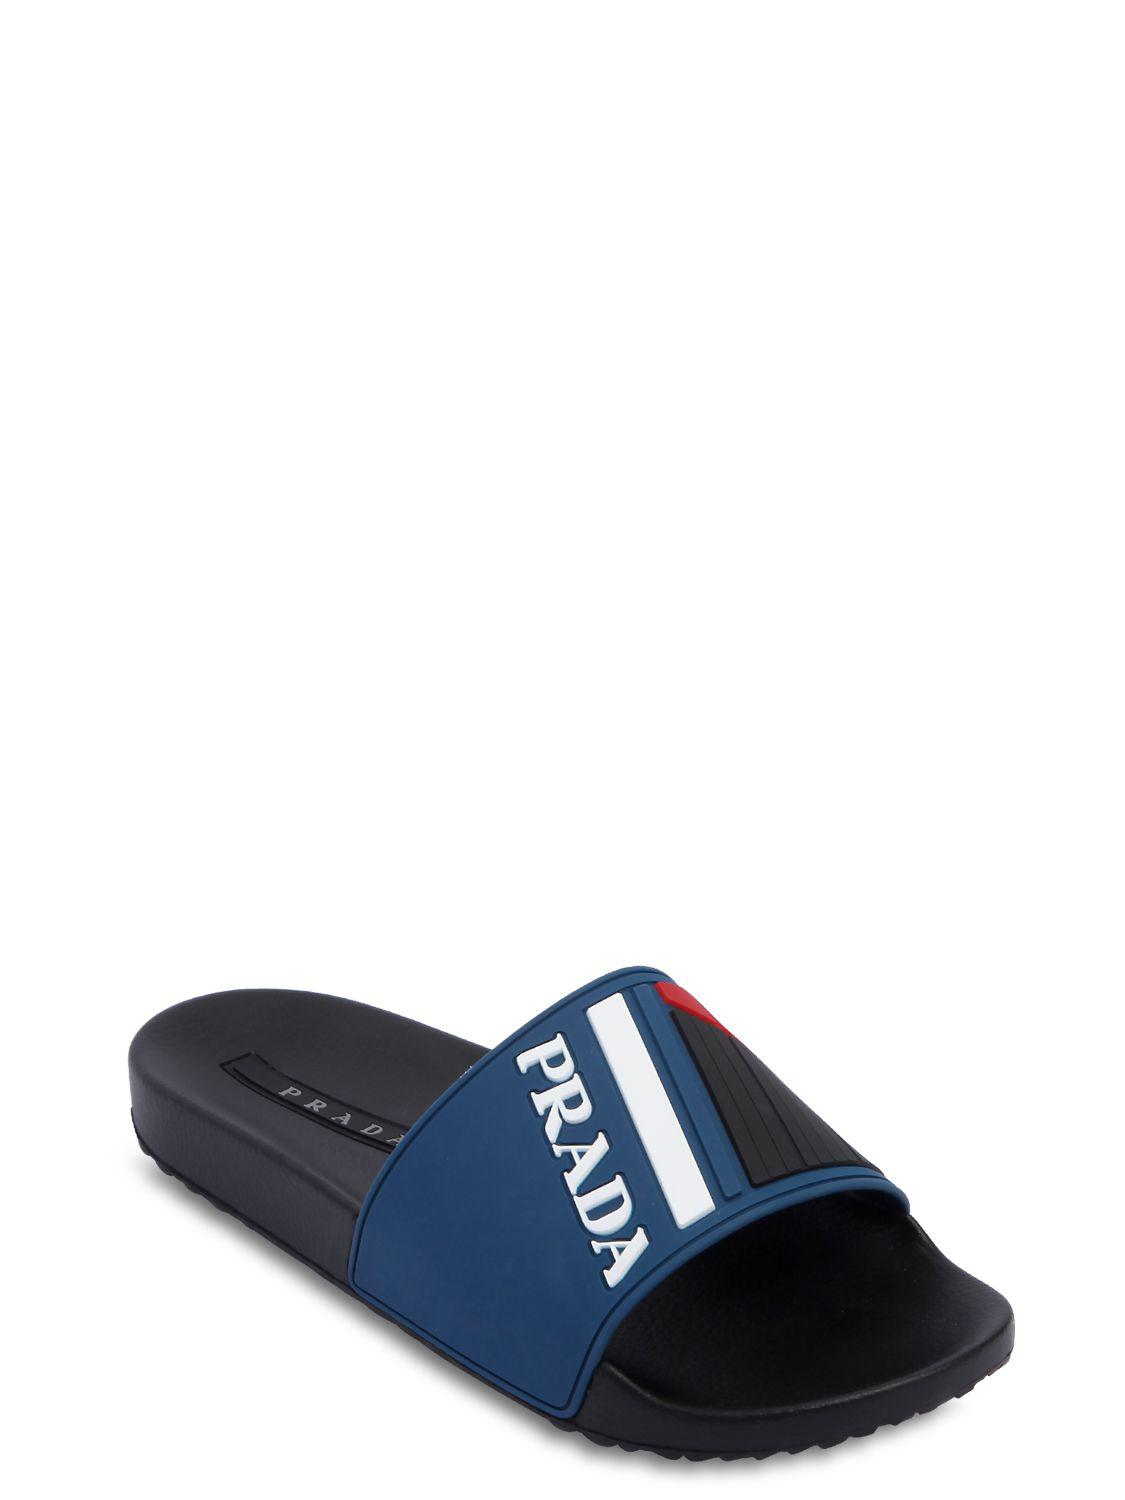 a91d32839bb Lyst - Prada Graphic Logo Pool Slides in Blue for Men - Save 62%